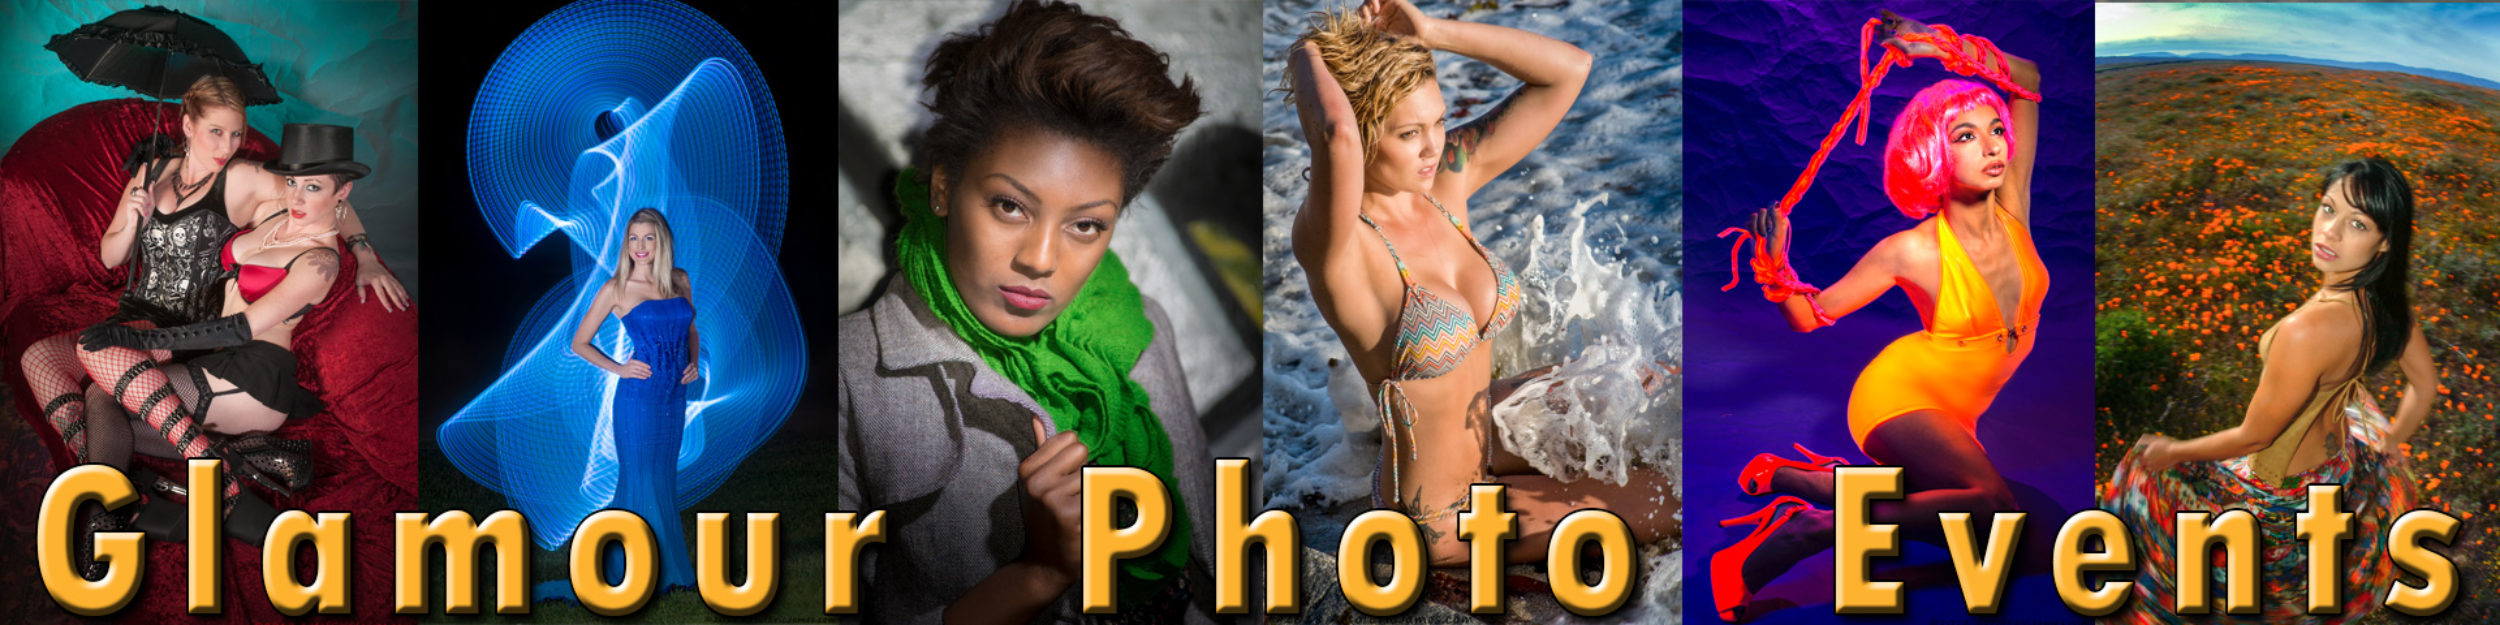 Glamour Photo Events